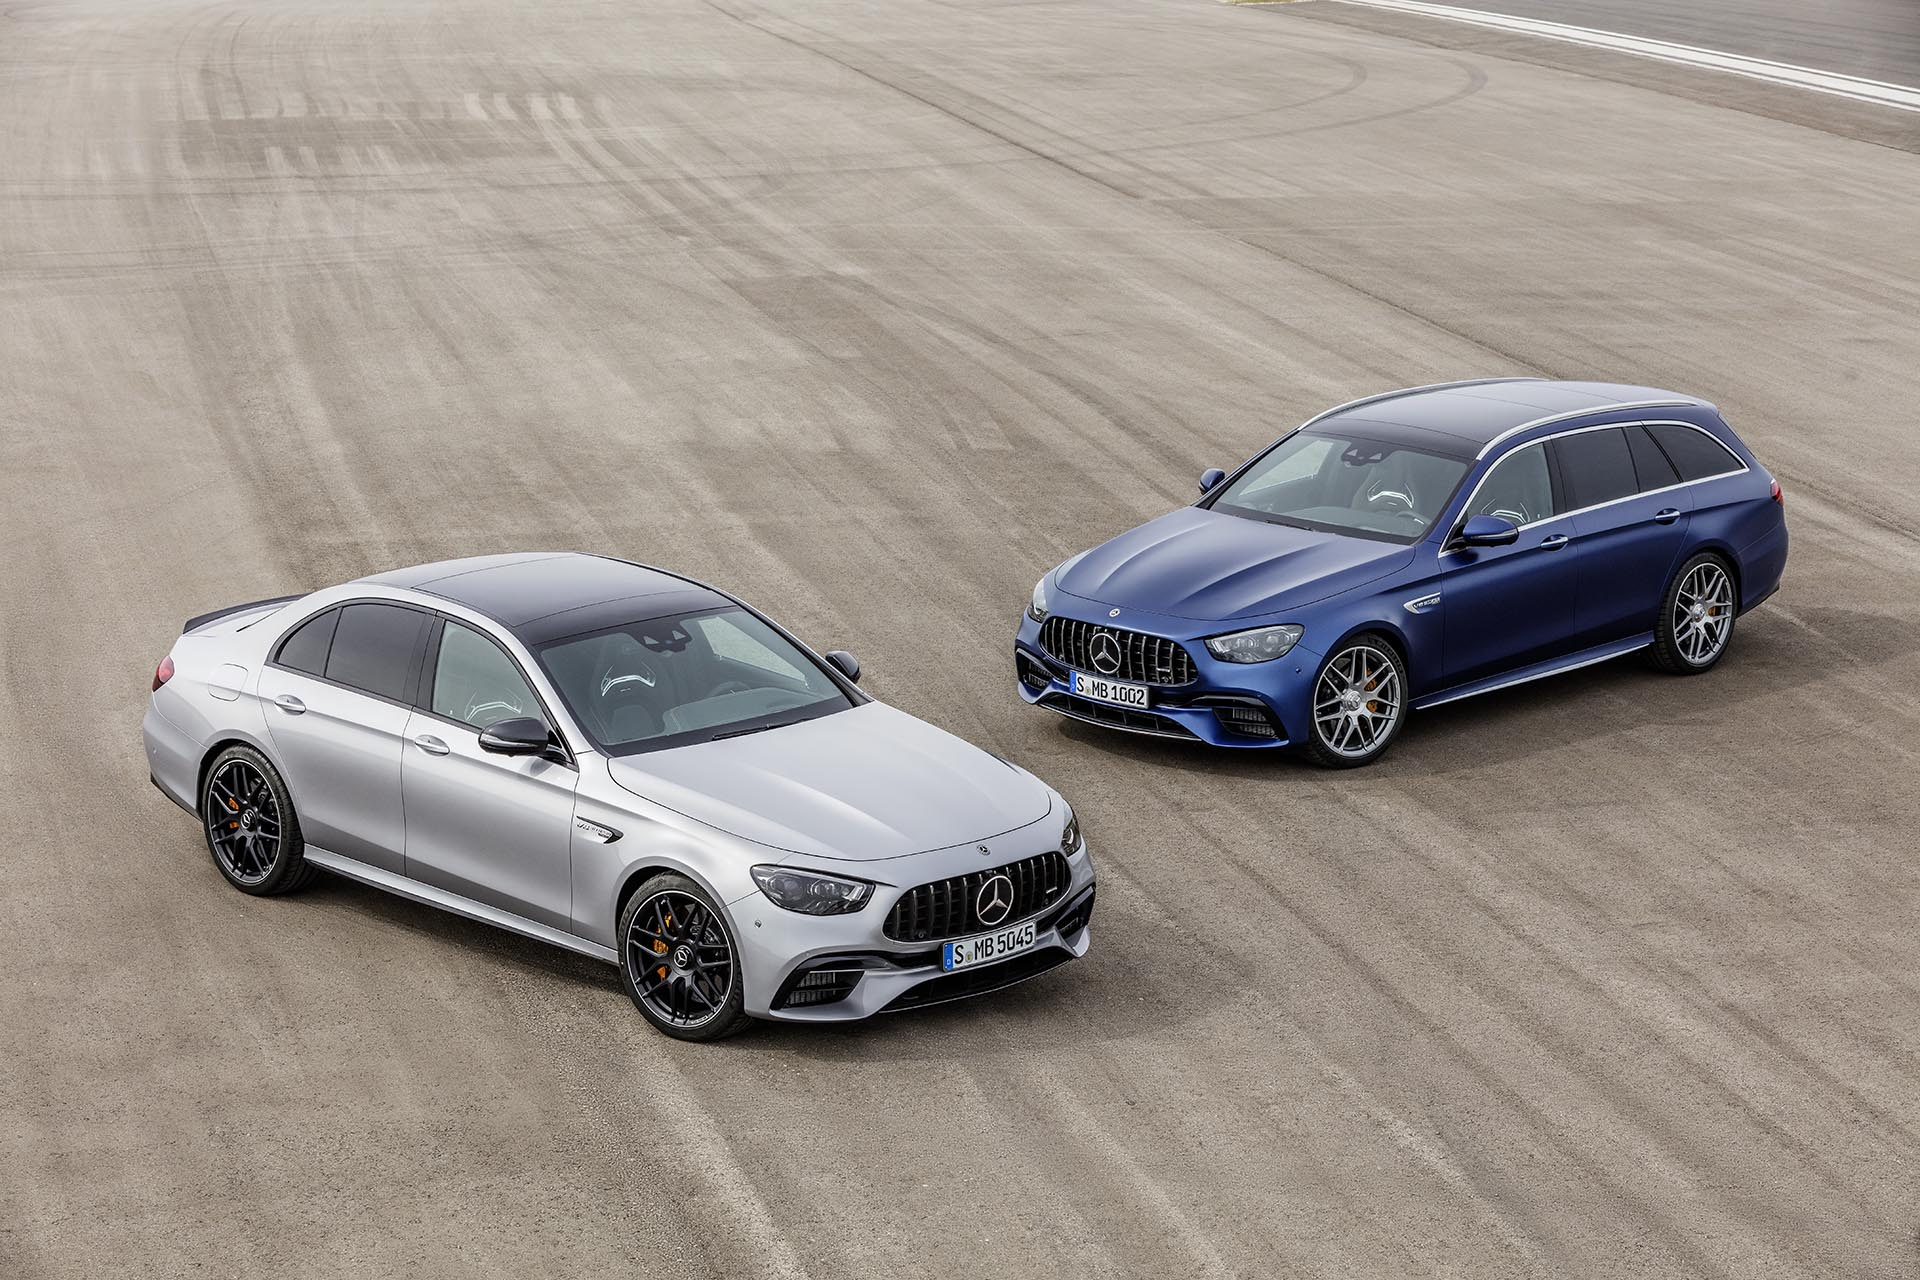 20_Mercedes-Benz E 63 S 4MATIC+ sedan and wagon